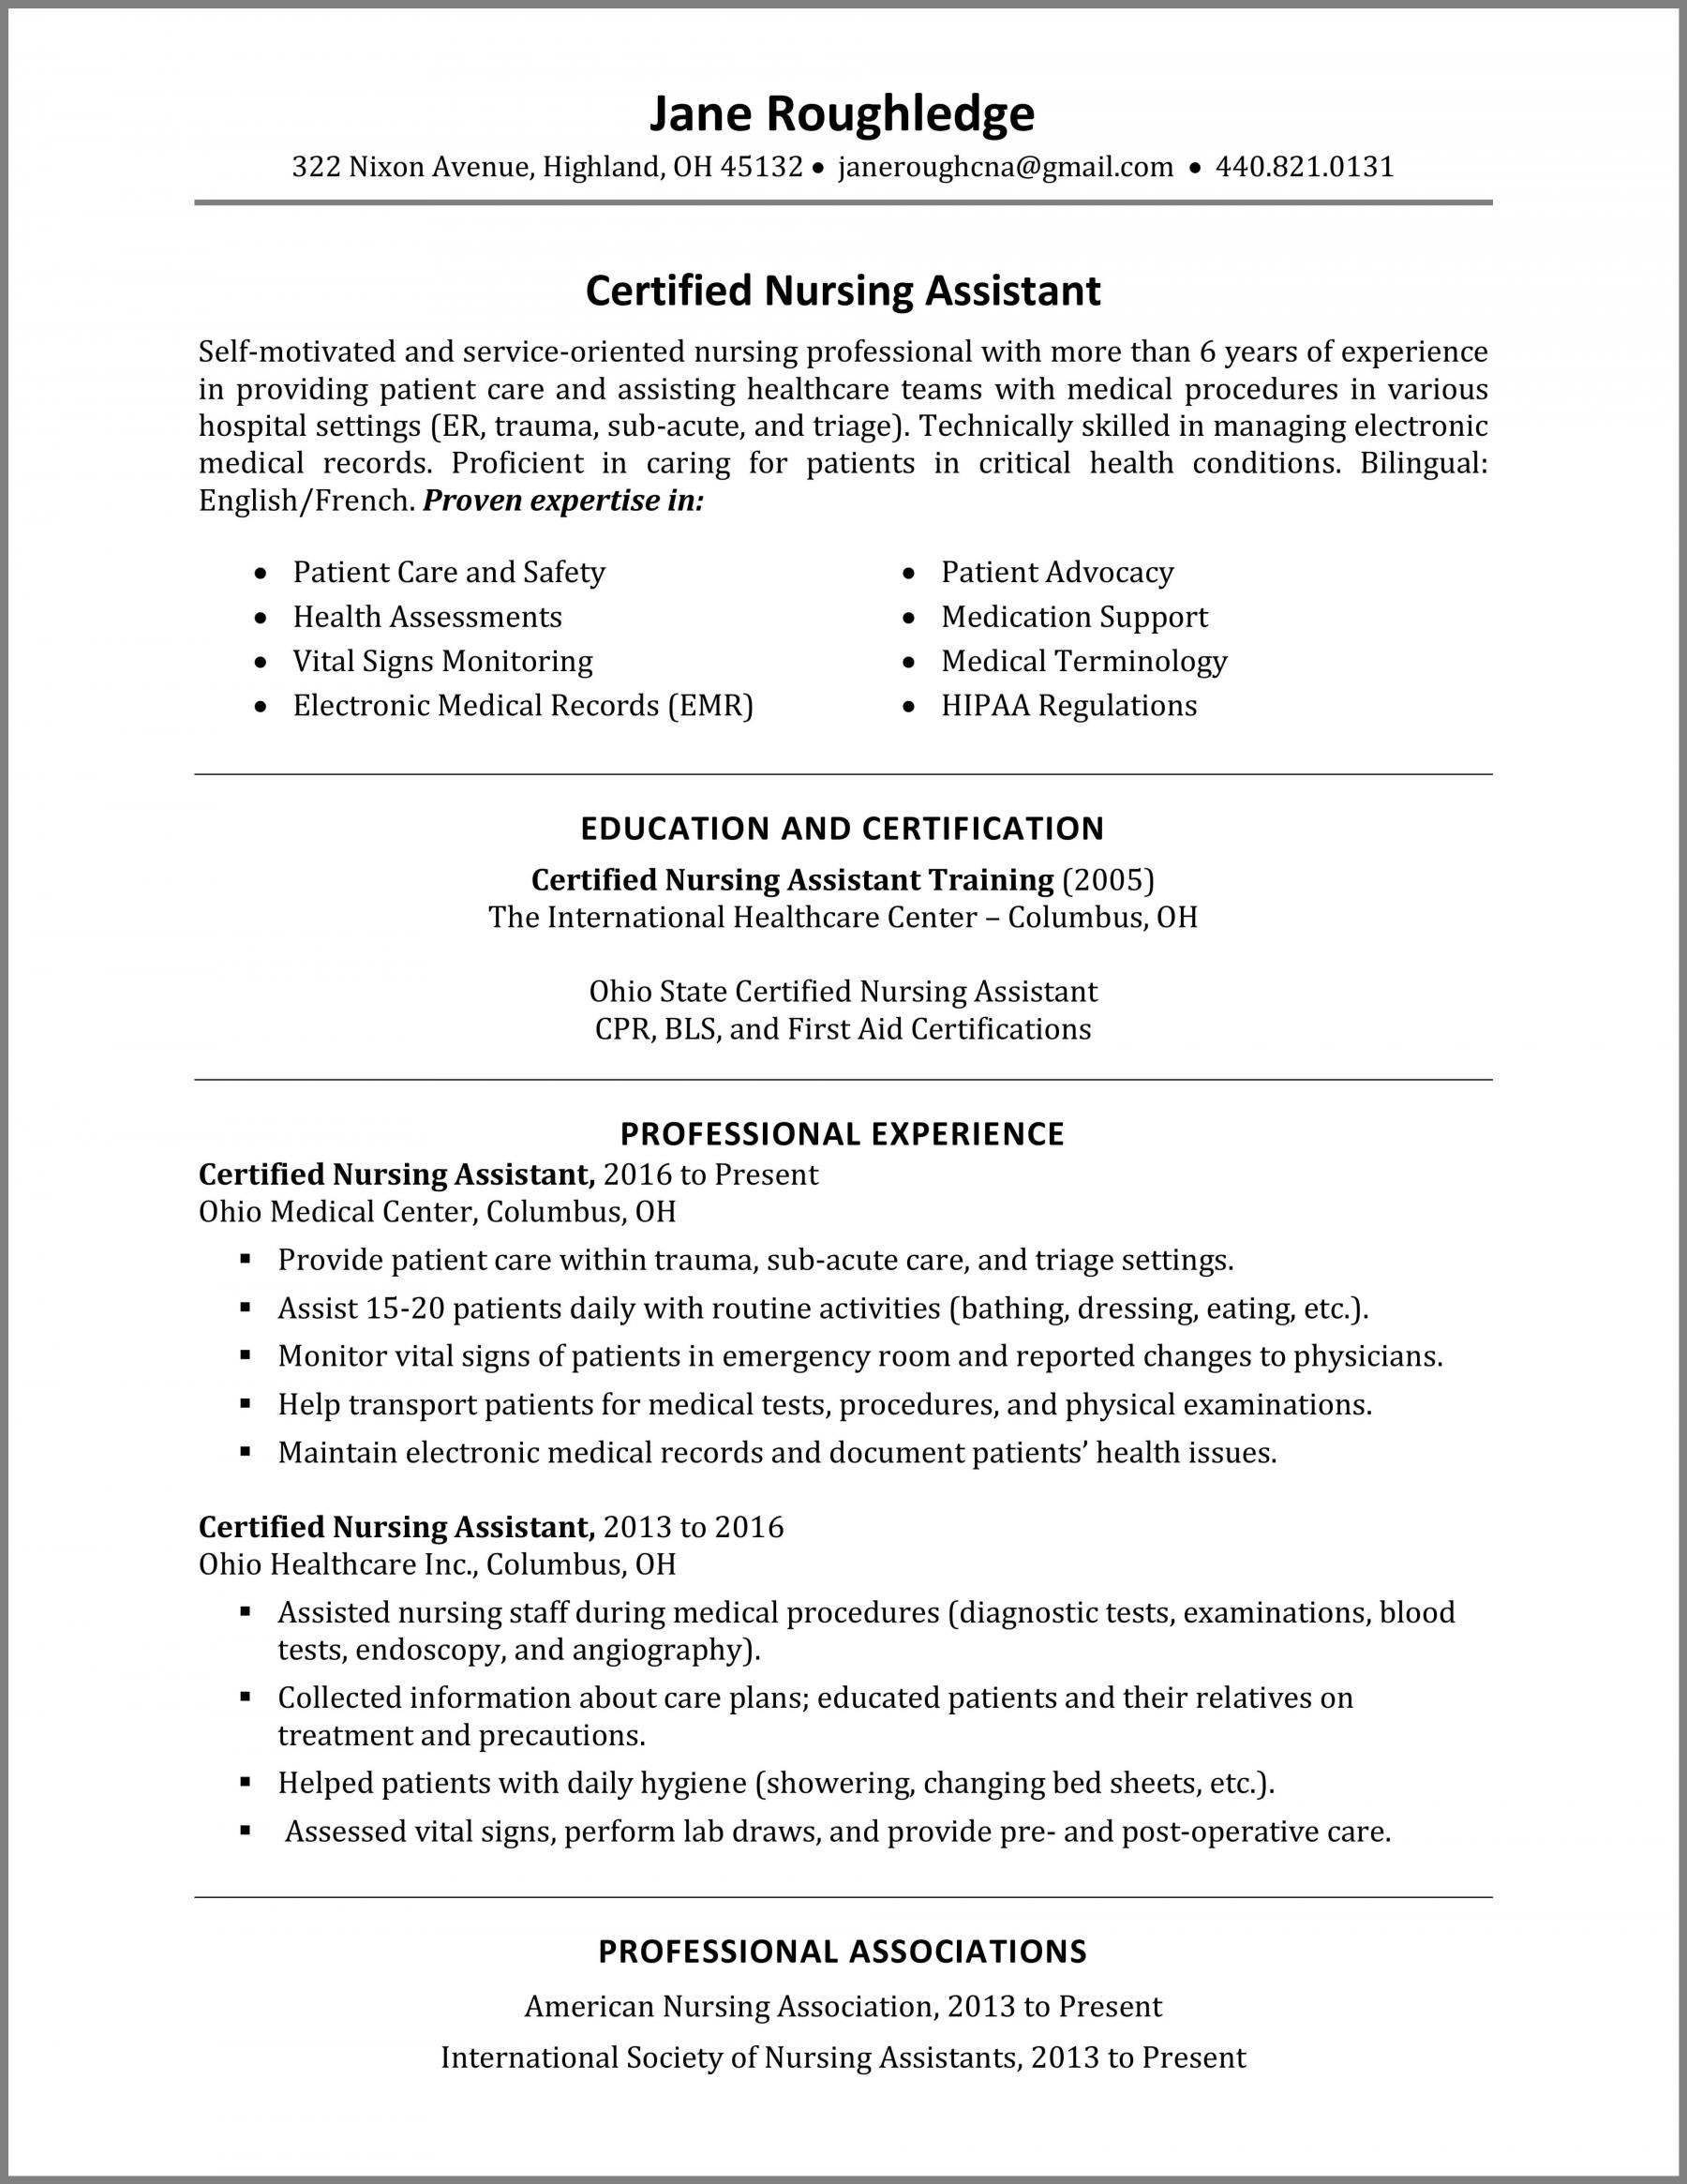 certified nursing assistant cna resume skills best examples and qualifications Resume Cna Resume Skills And Qualifications